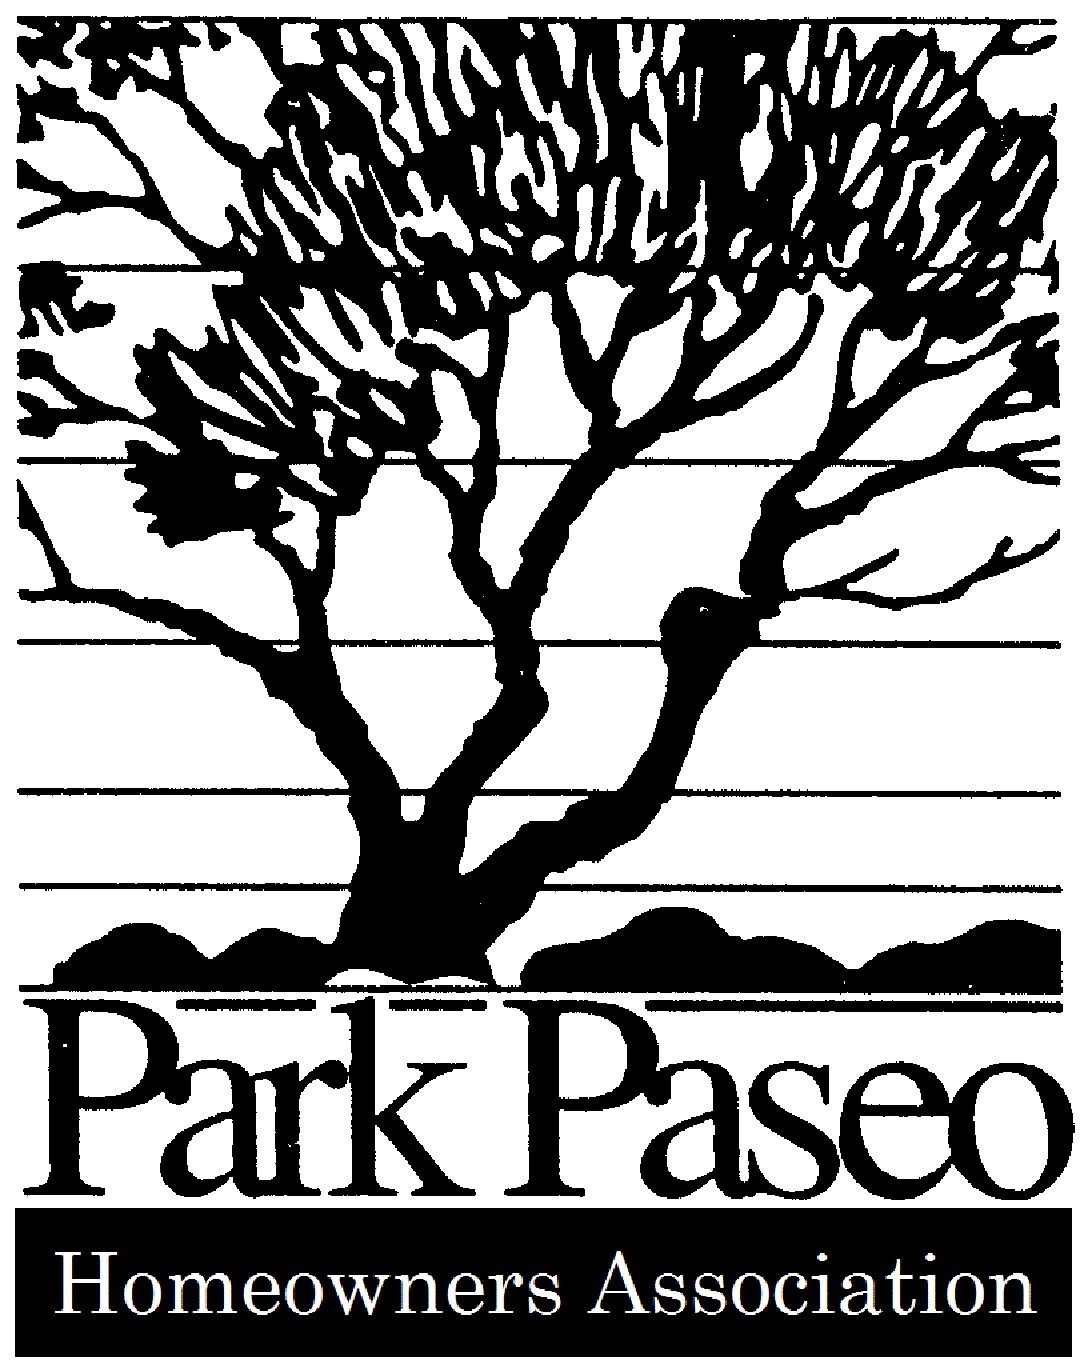 Park Paseo Homeowners Assoc